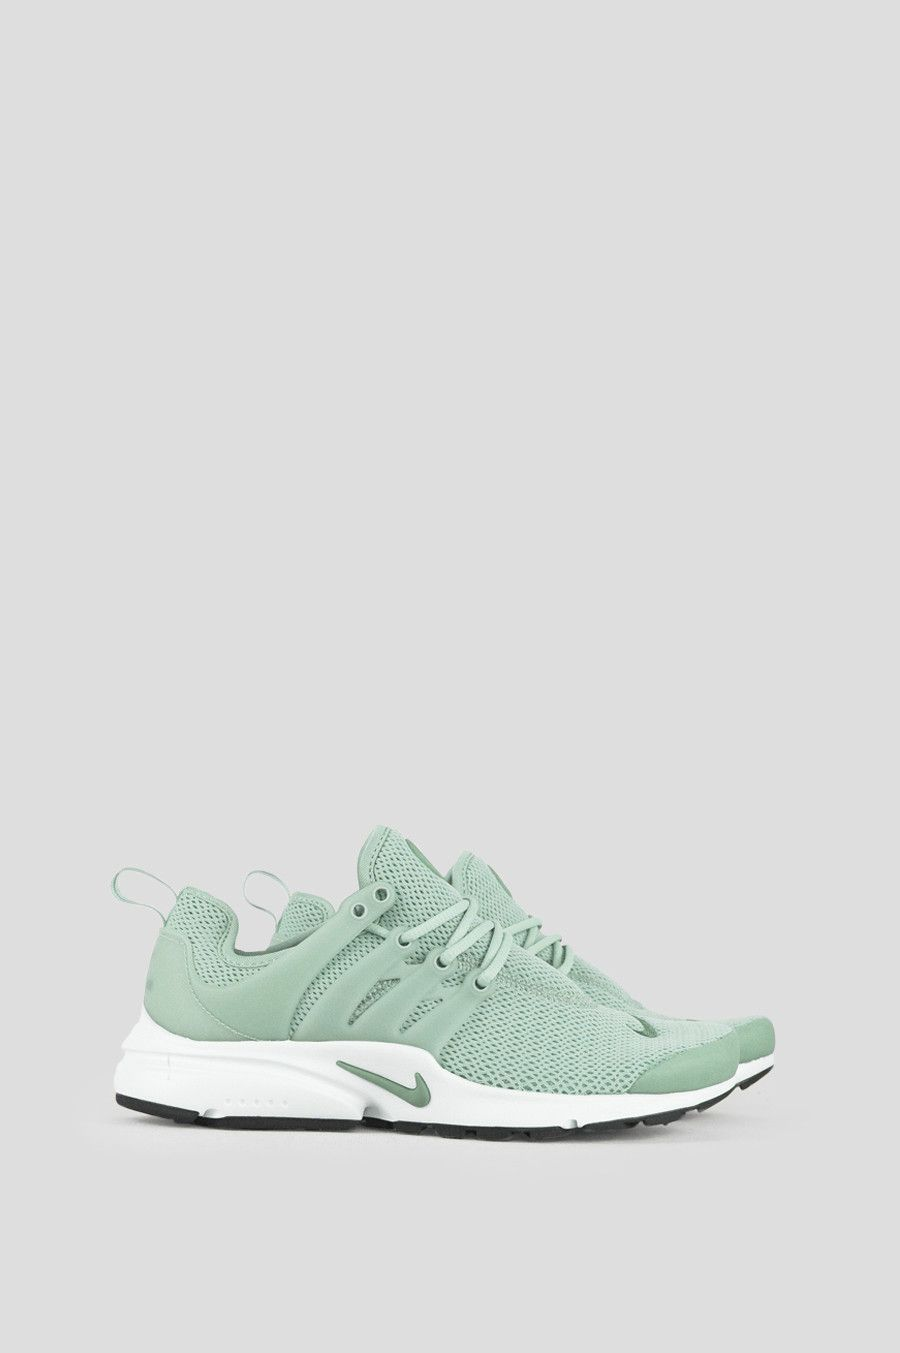 22e2e72c409c The Nike Air Presto Women s Shoe is inspired by the comfort and minimalism  of a classic T-shirt for lightweight everyday comfort. - Product Code   878068-300 ...